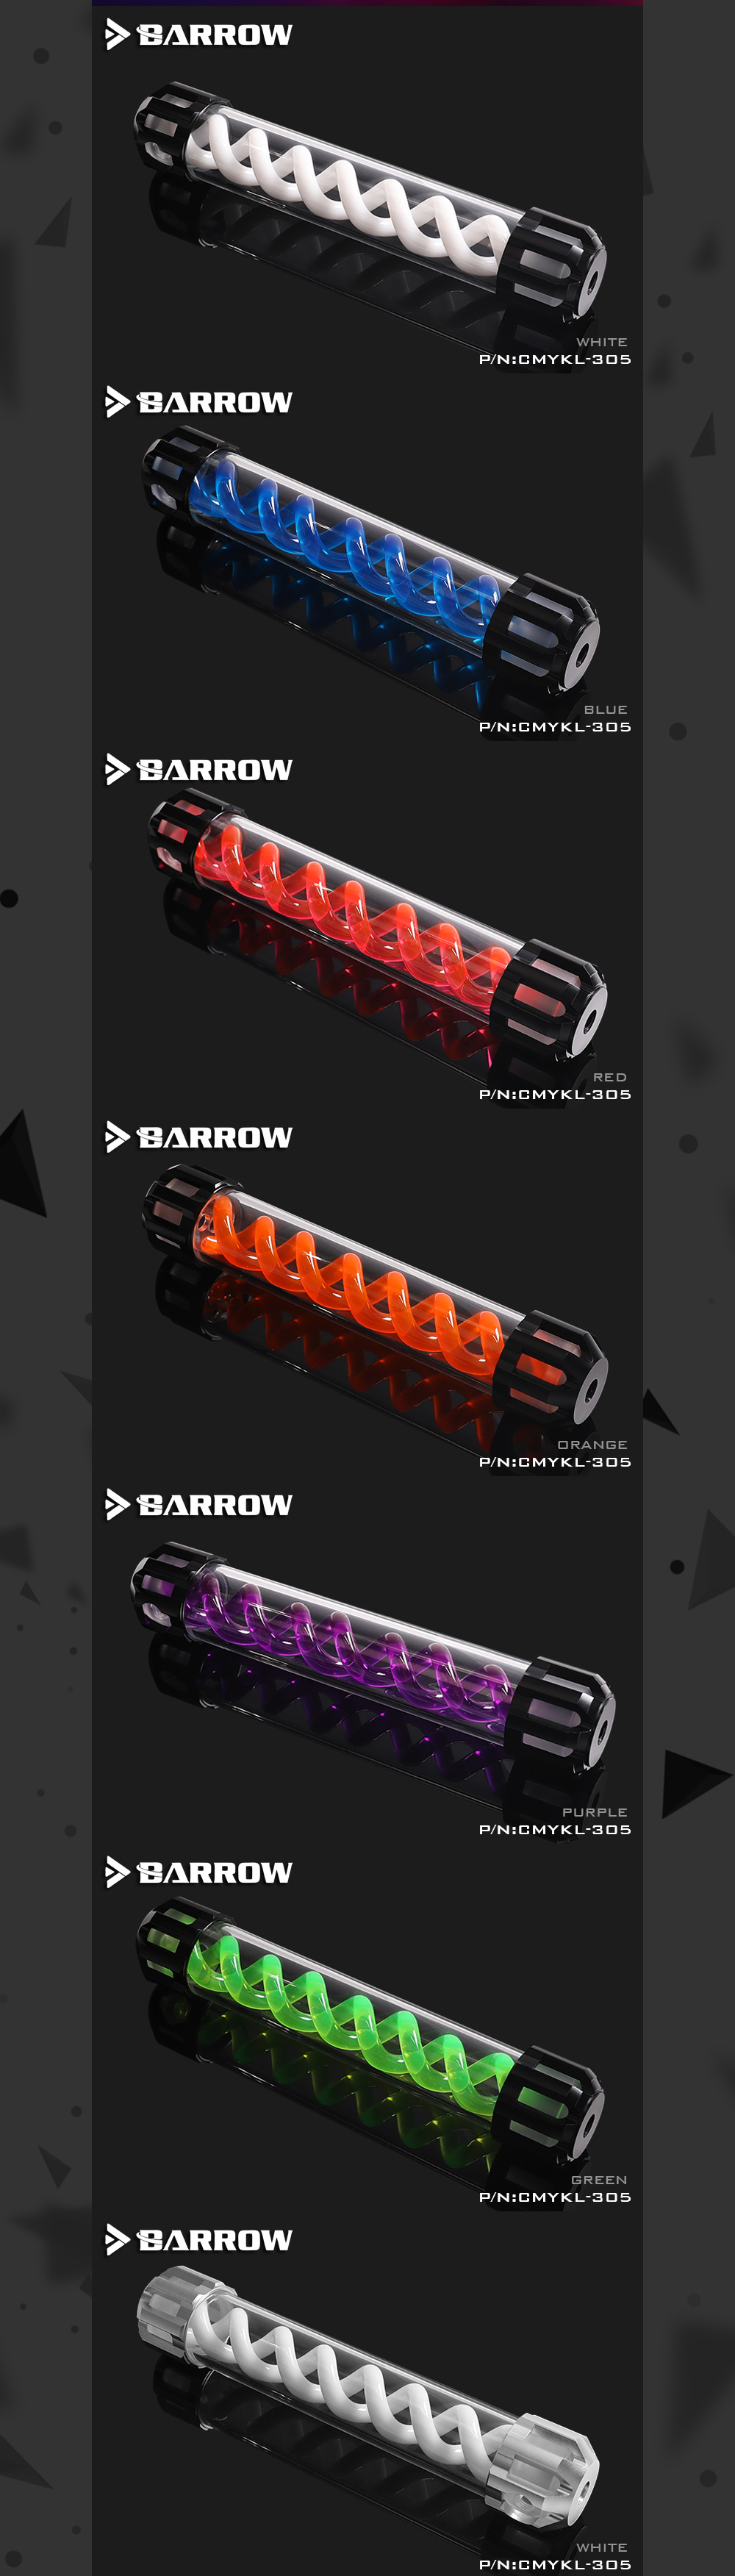 Barrow CMYKL-305, Composite Type Virus-T Reservoirs, Aluminum Alloy Cover + Acrylic Body, Multiple Color Spiral, 305mm